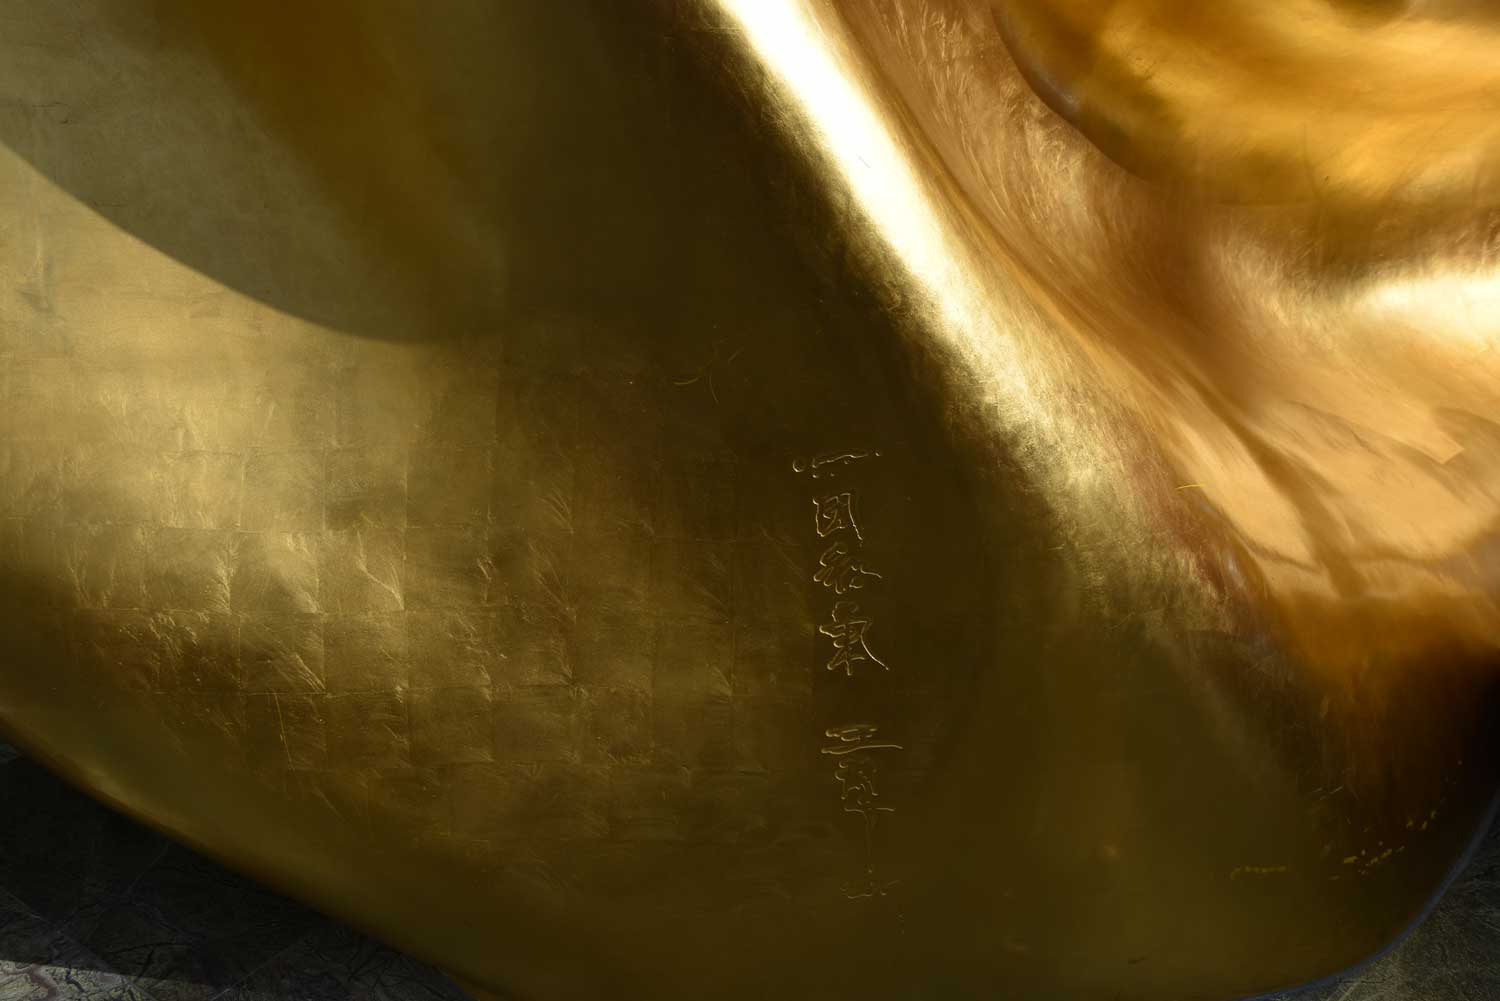 MGM Cotai Harmony gold house scratches